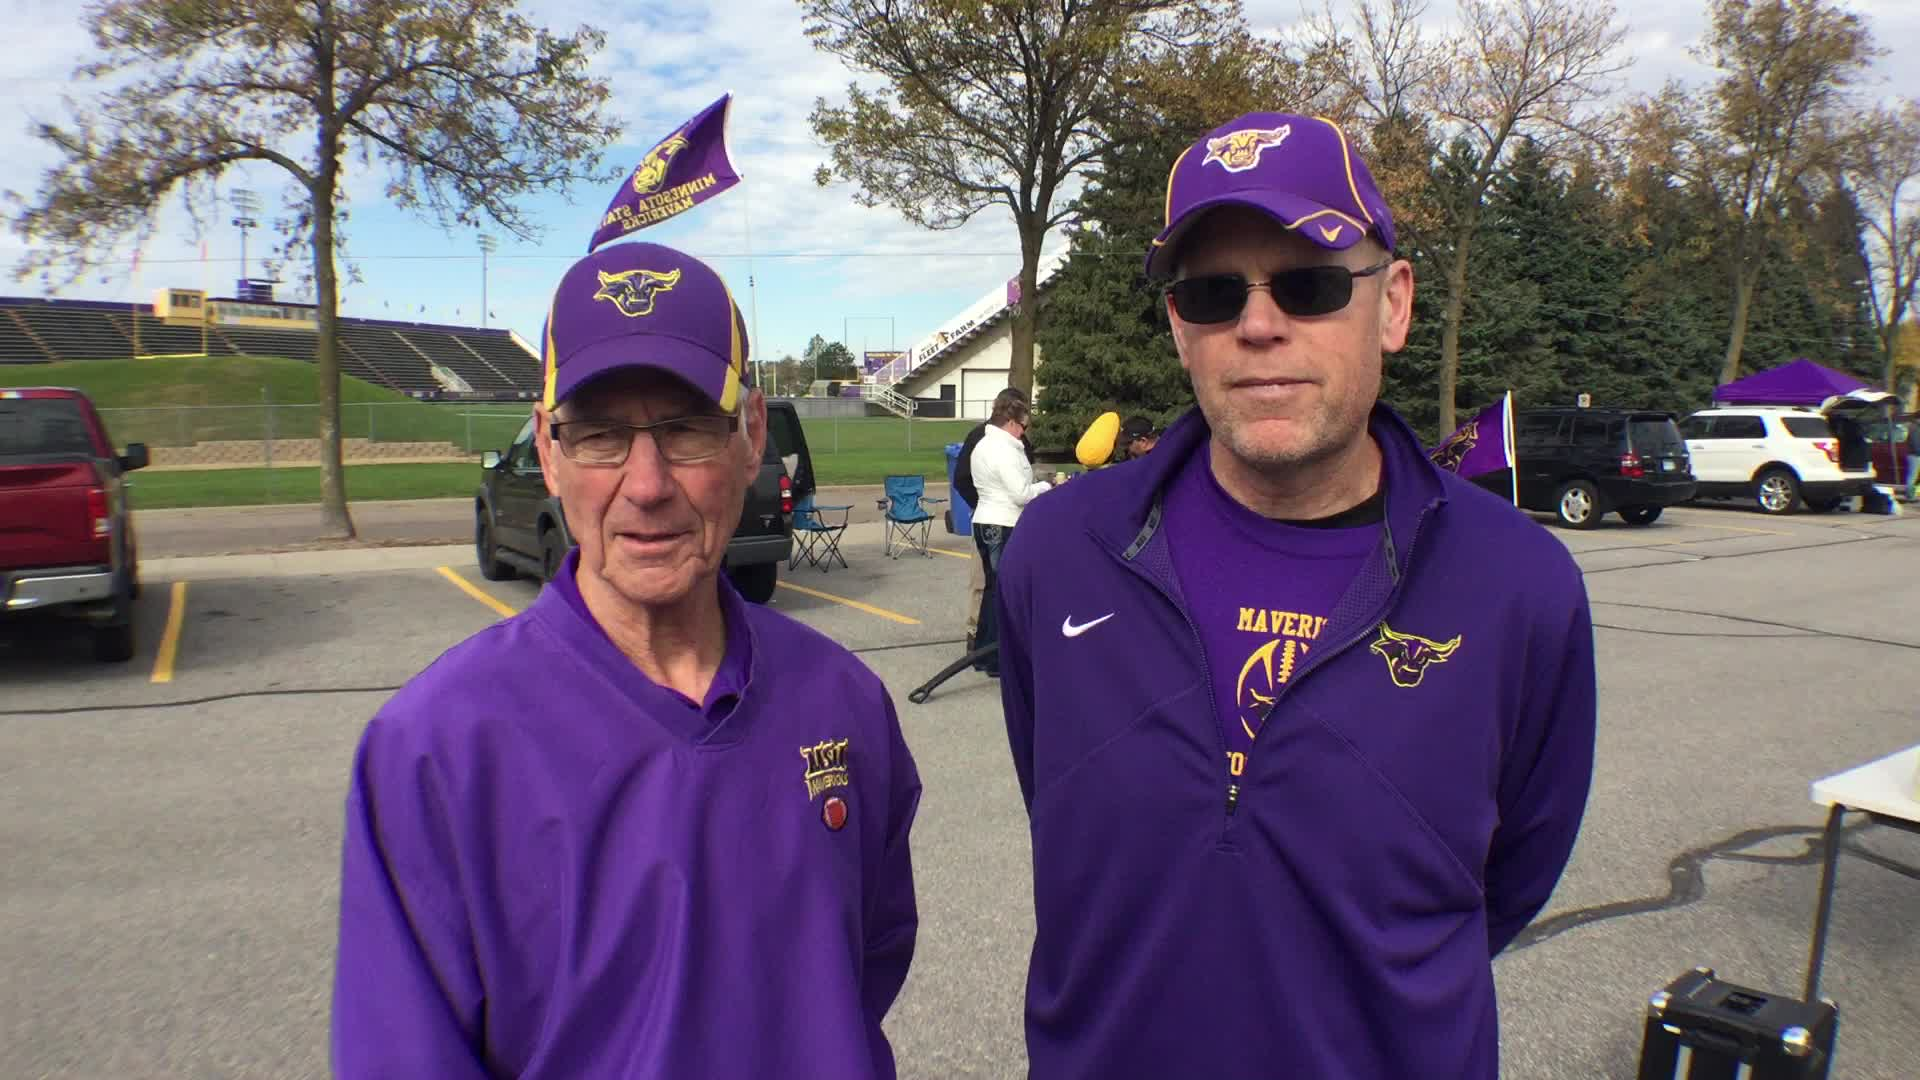 John F. Behrends and Philip W. Driscoll, Mankato, MN - Homecoming 2016 at Minnesota State University, Mankato